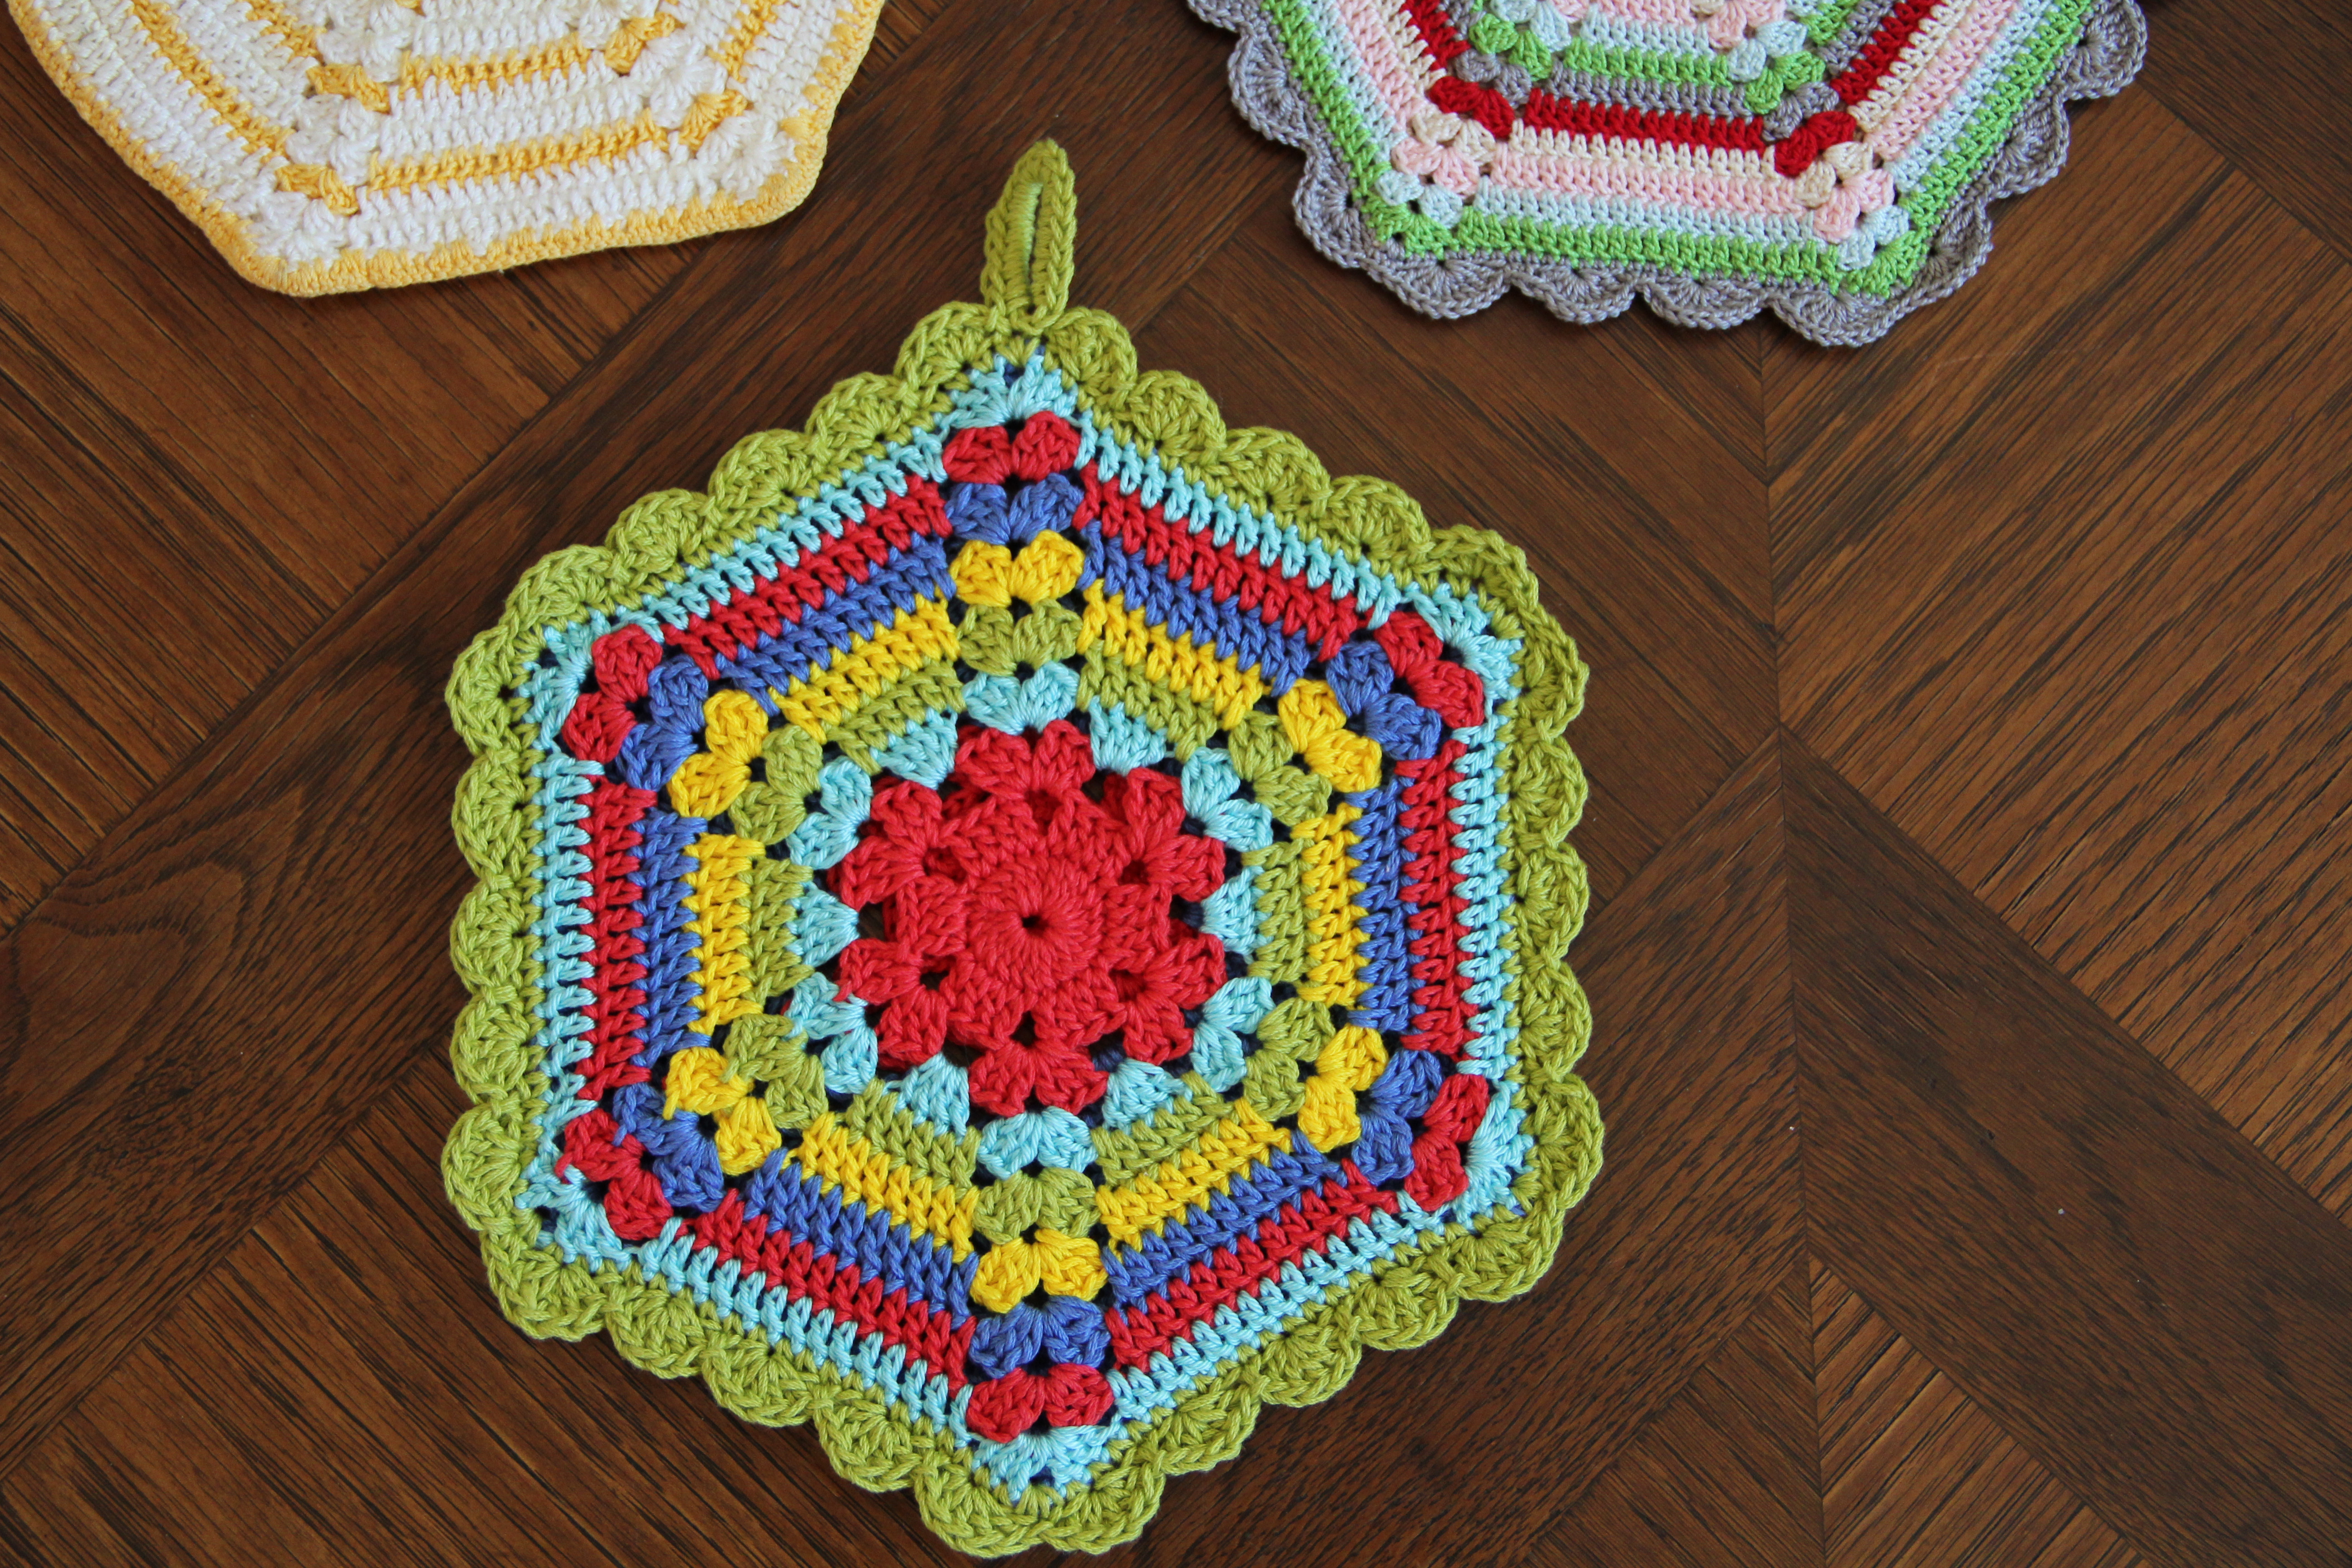 Crochet Potholder Pattern New Vintage Crochet Potholder Patterns Crochet and Knit Of Amazing 43 Pictures Crochet Potholder Pattern